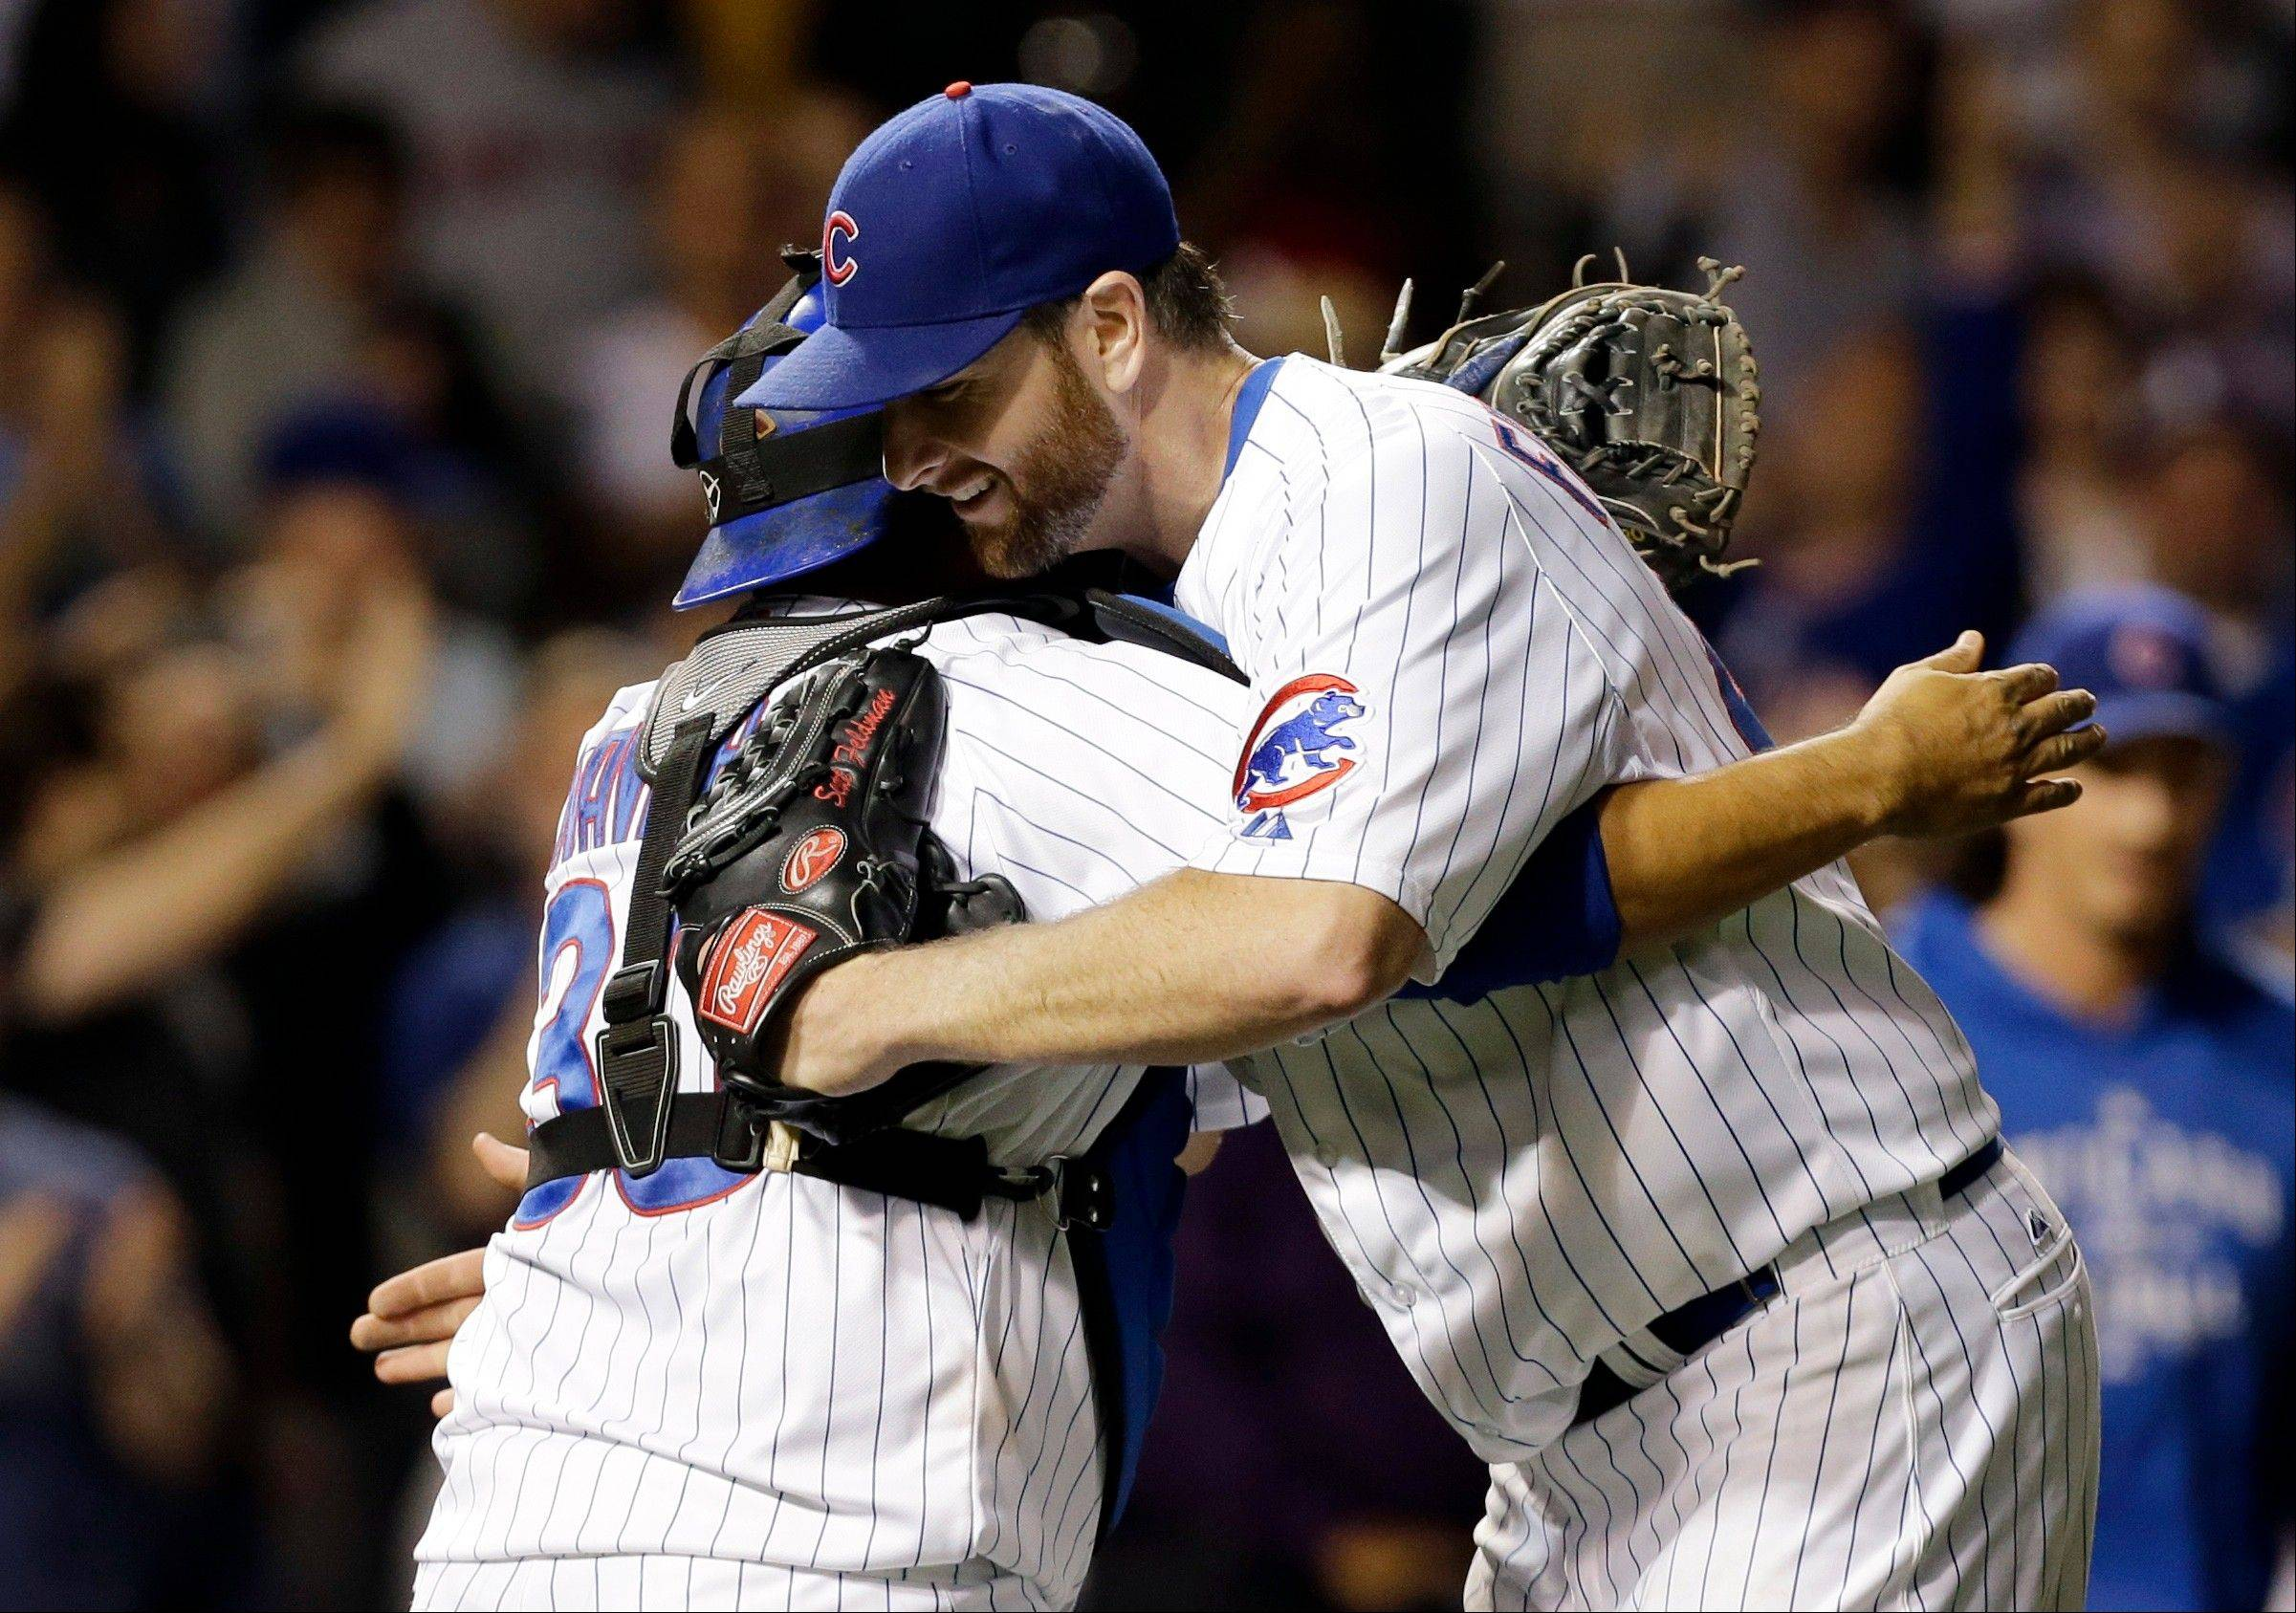 Chicago Cubs starter Scott Feldman, right, celebrates with catcher Dioner Navarro after the Cubs defeated the San Diego Padres 6-2 in a baseball game in Chicago, Wednesday, May 1, 2013. (AP Photo/Nam Y. Huh)